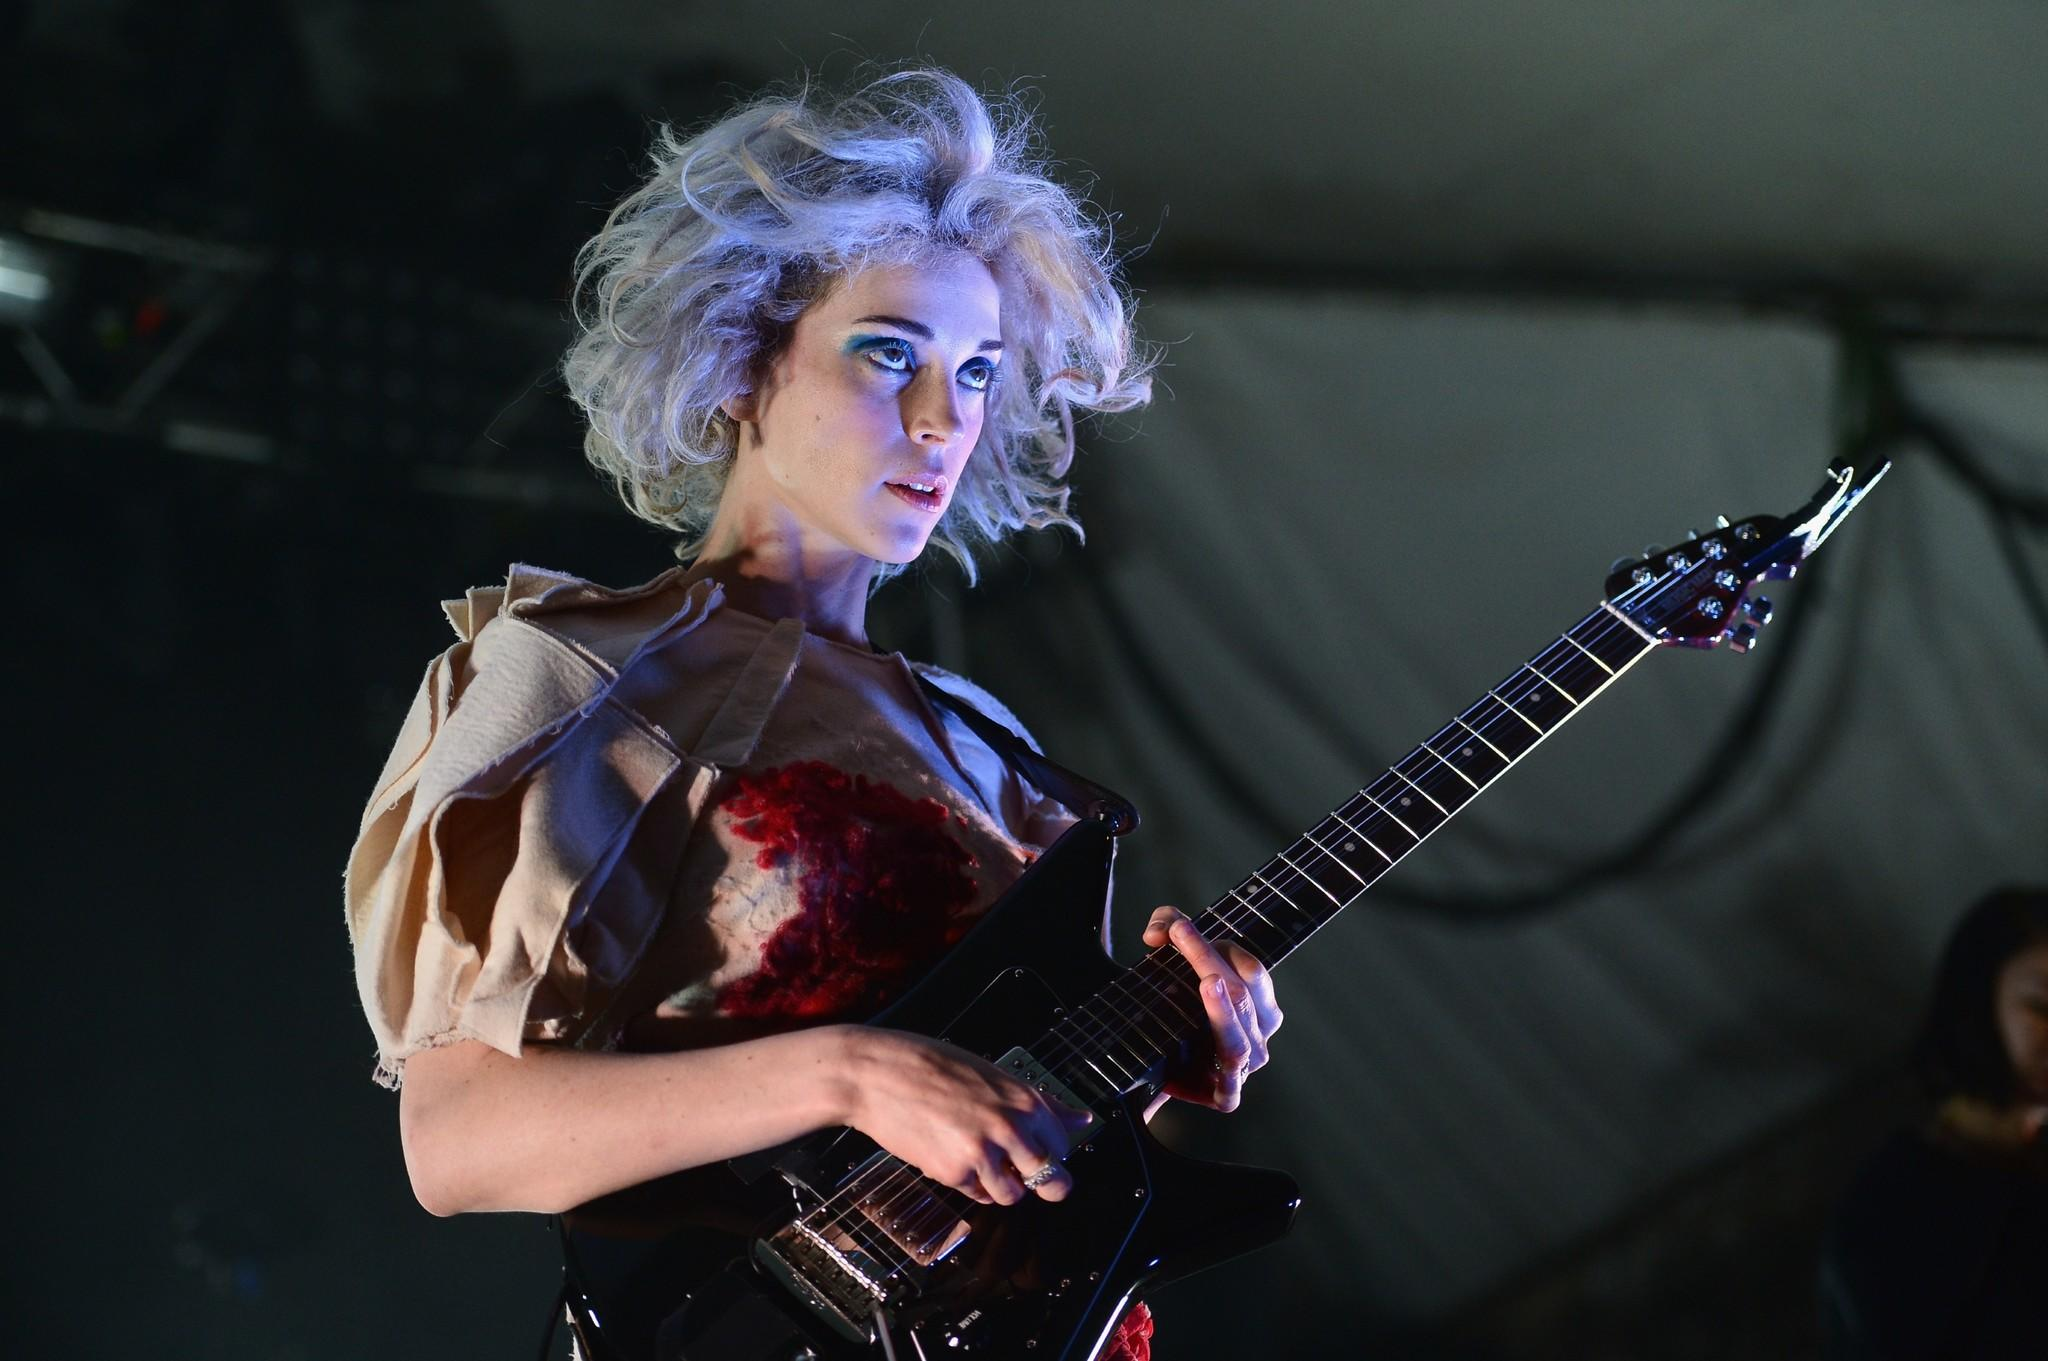 Musician St. Vincent performs during the NPR 2014 SXSW Music, Film   Interactive show.